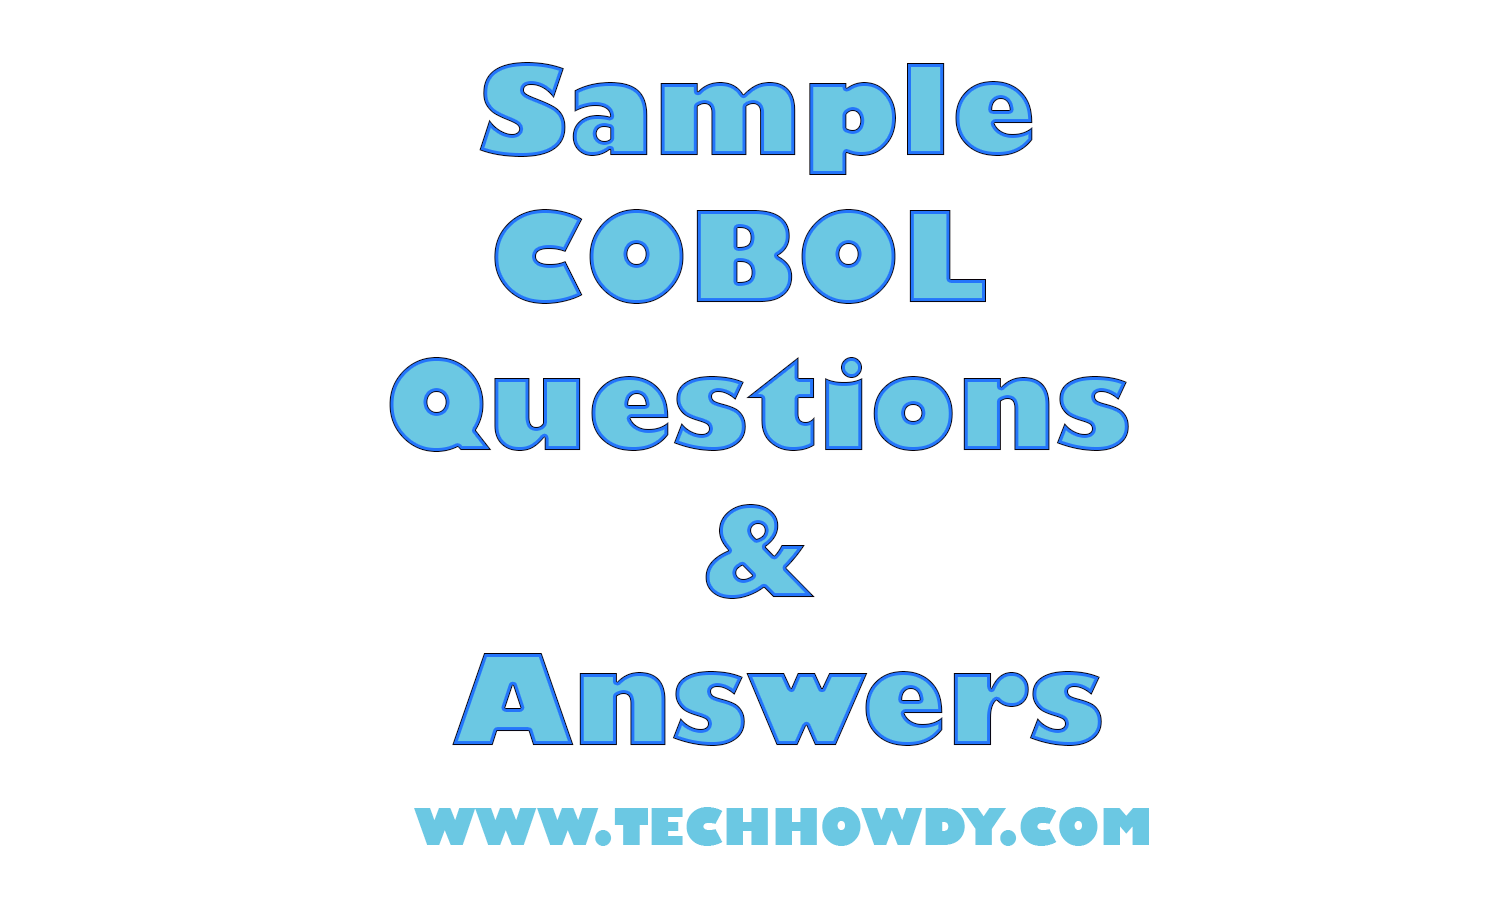 Sample cobol questions and answers for ibm interview techhowdy baditri Choice Image